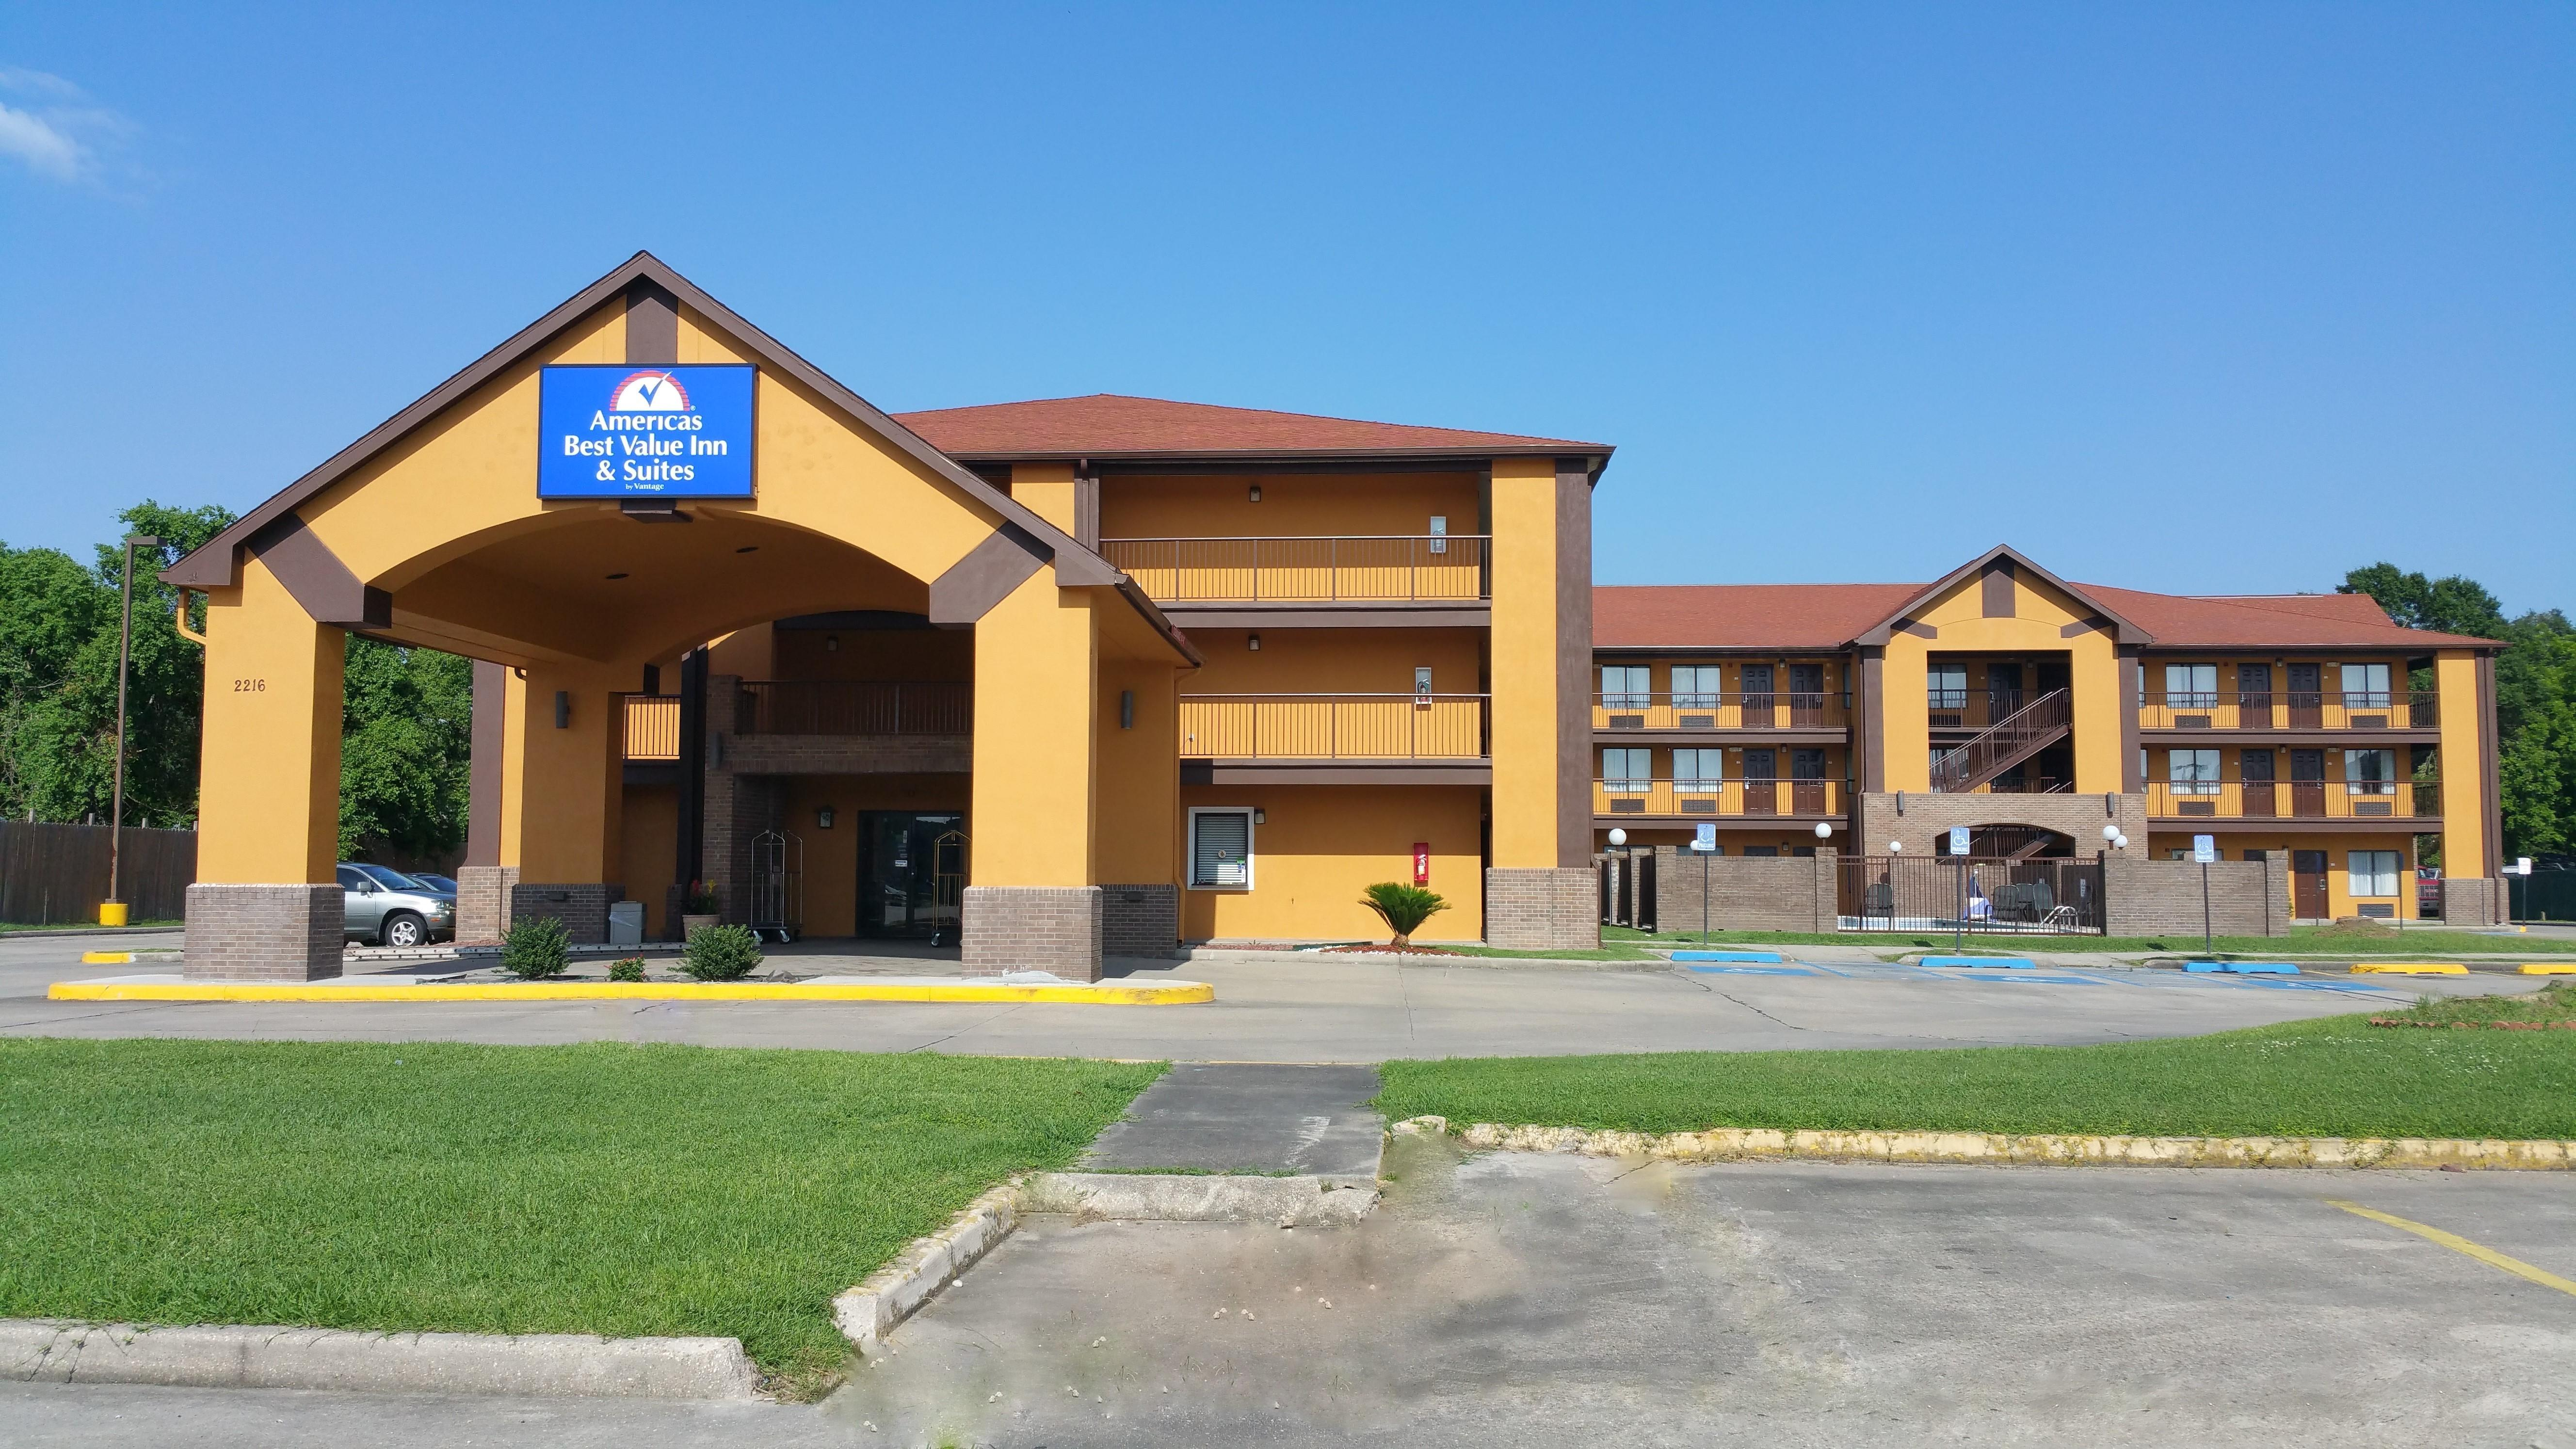 Americas Best Value Inn & Suites - Lafayette North/I-10